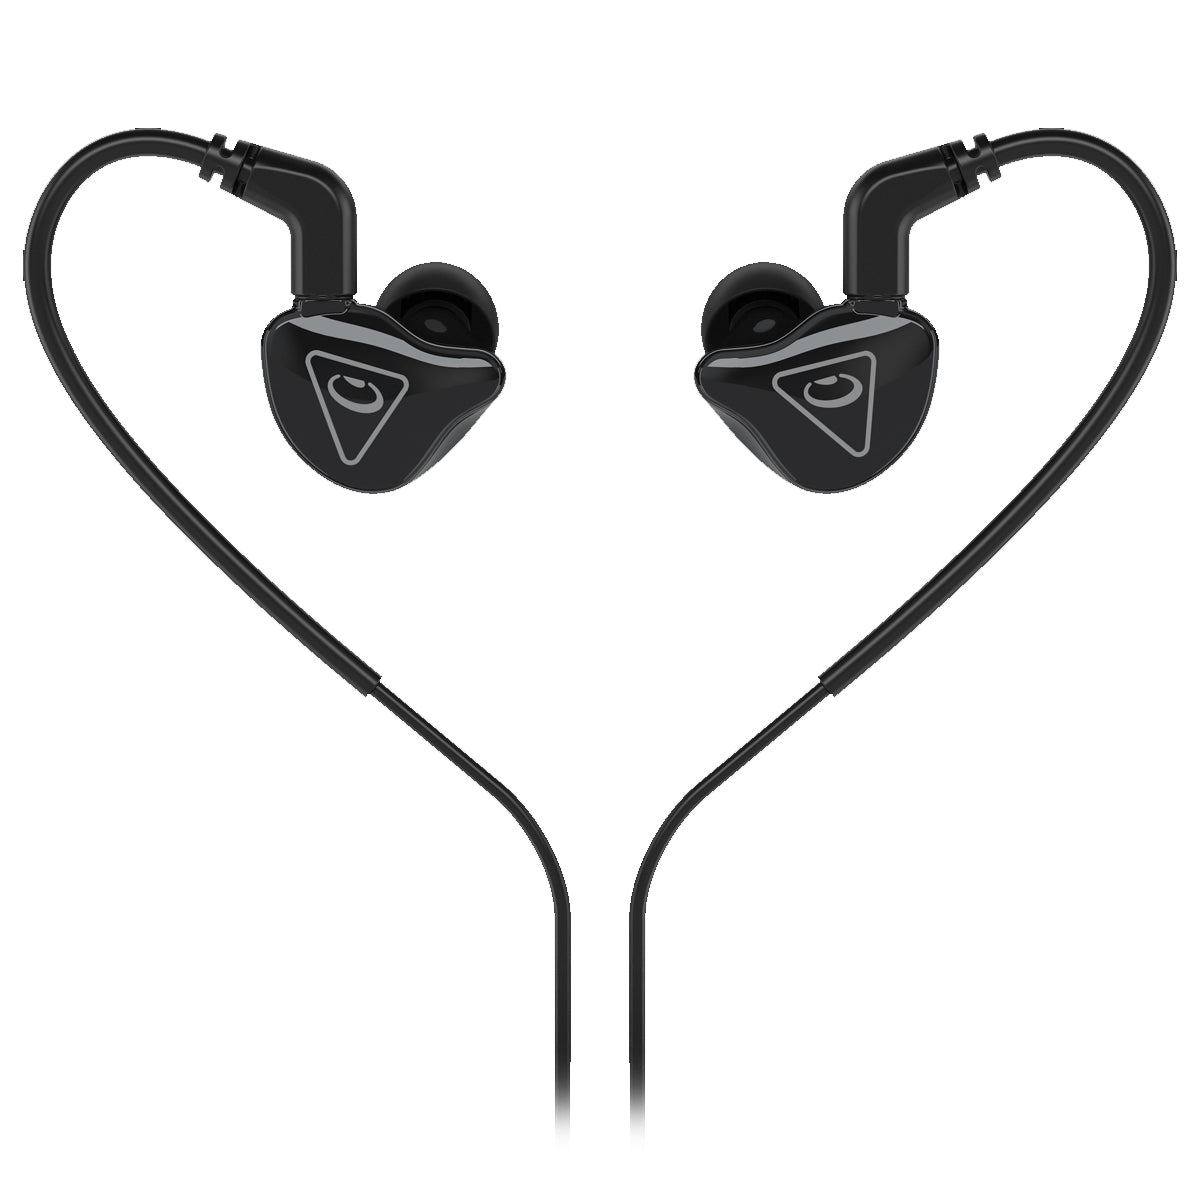 Behringer MO240 Studio Monitoring Earphones In-Ear Monitors w/ Dual Hybrid Drivers